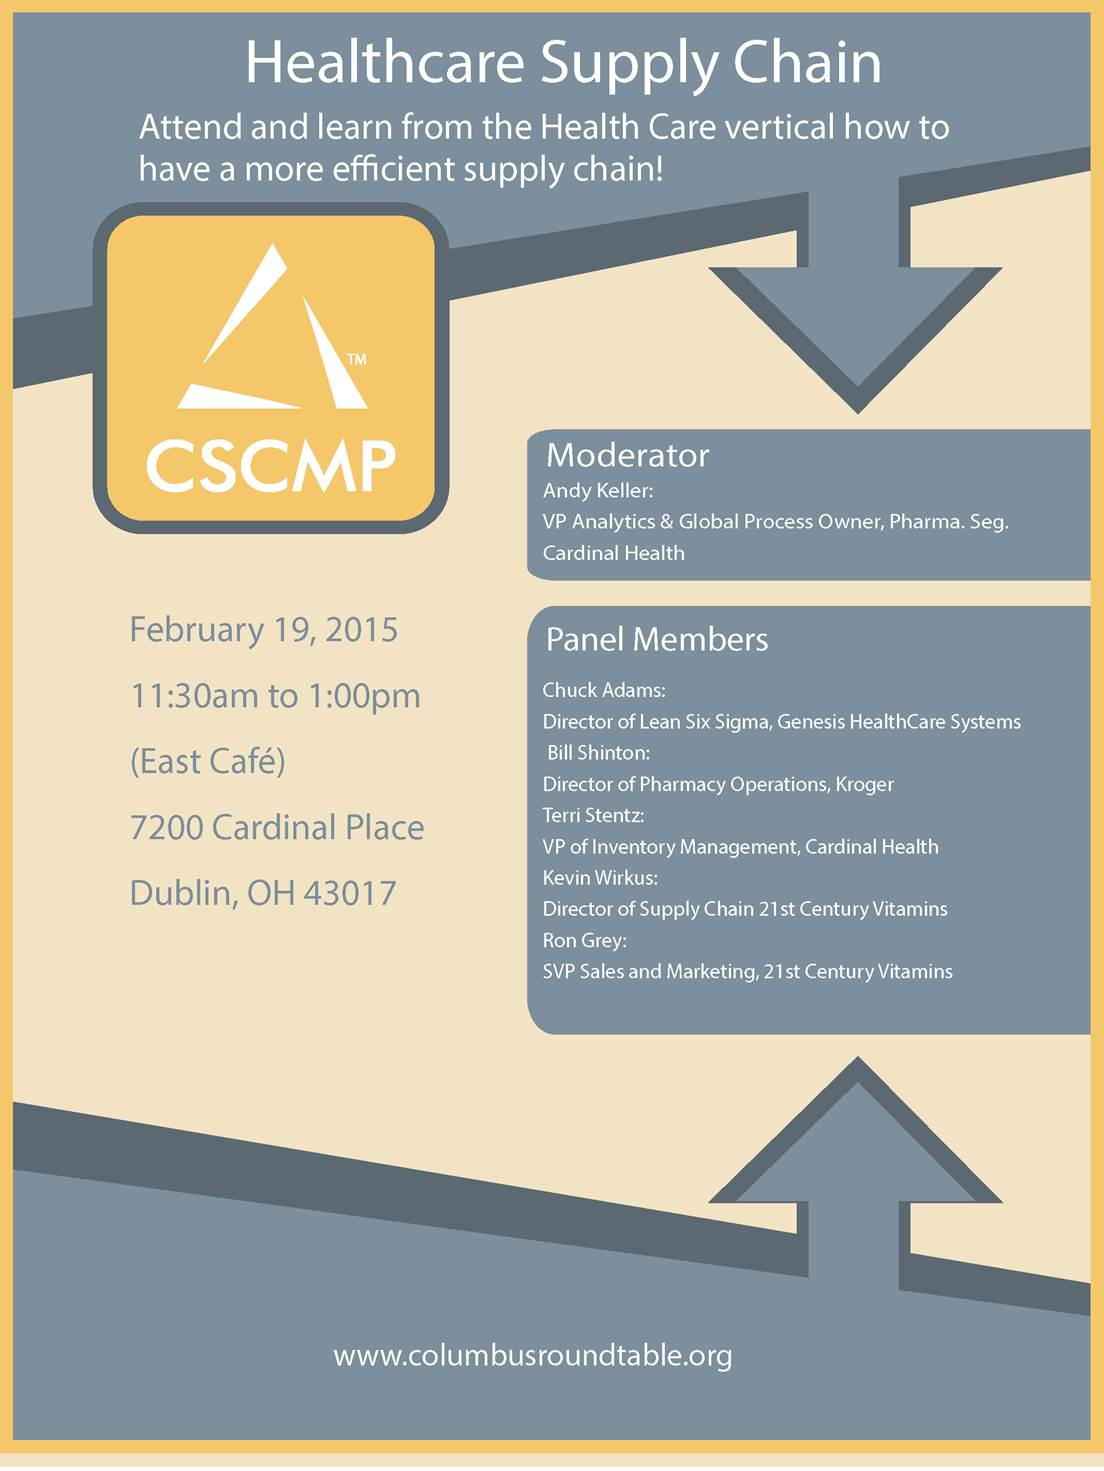 Healthcare Supply Chain Cscmp Columbus Rountdable Council Of